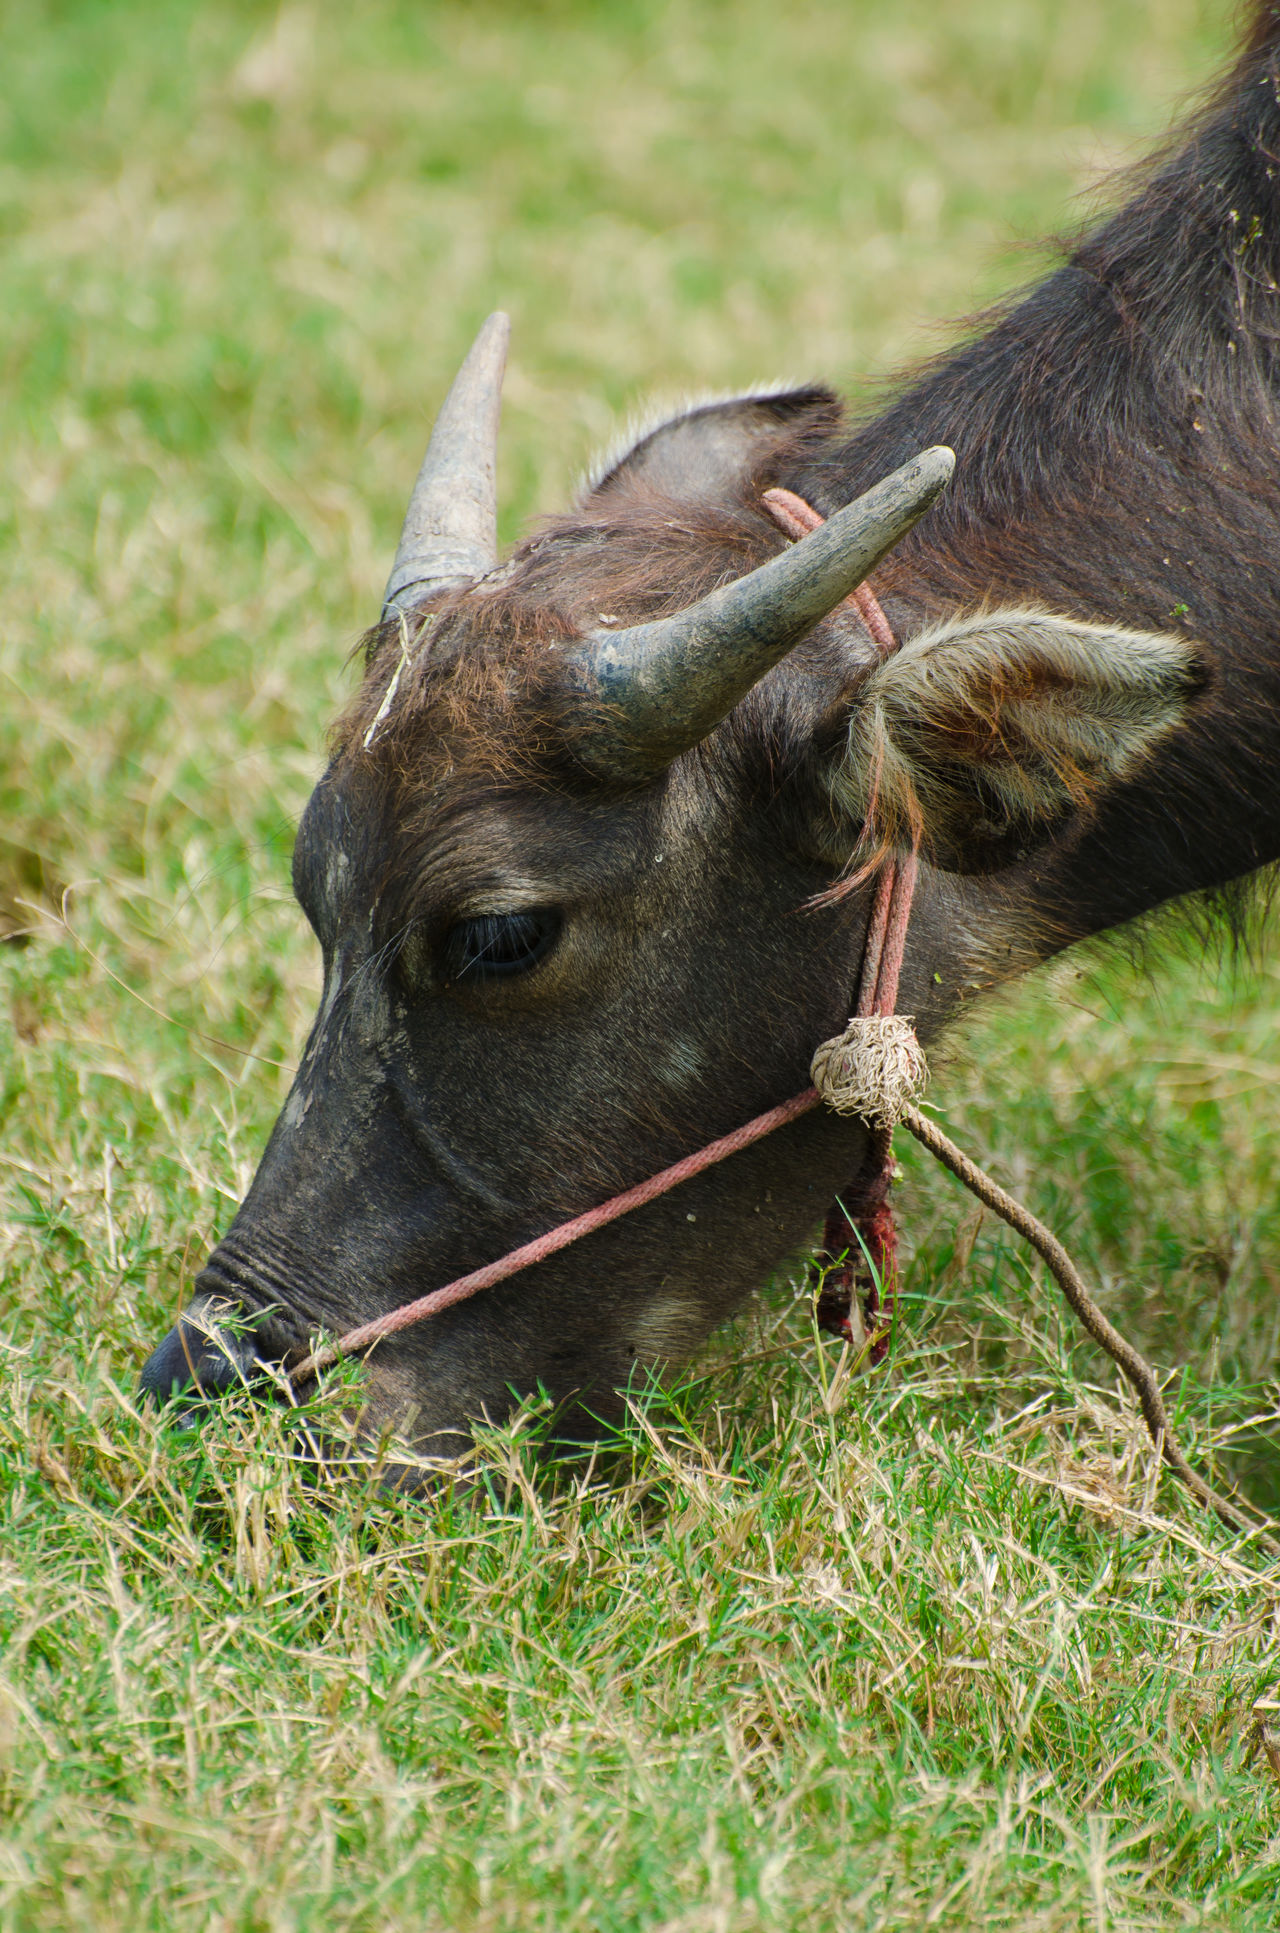 Close up photo of Thai Buffalo, chewing grass in the meadow. Animal Themes Bovine Buffalo Cattle Creature Day Domestic Animals Eating Fauna Field Grass Graze Head Shot  Horn Mammal Nature No People One Animal Outdoors Rope Thailand